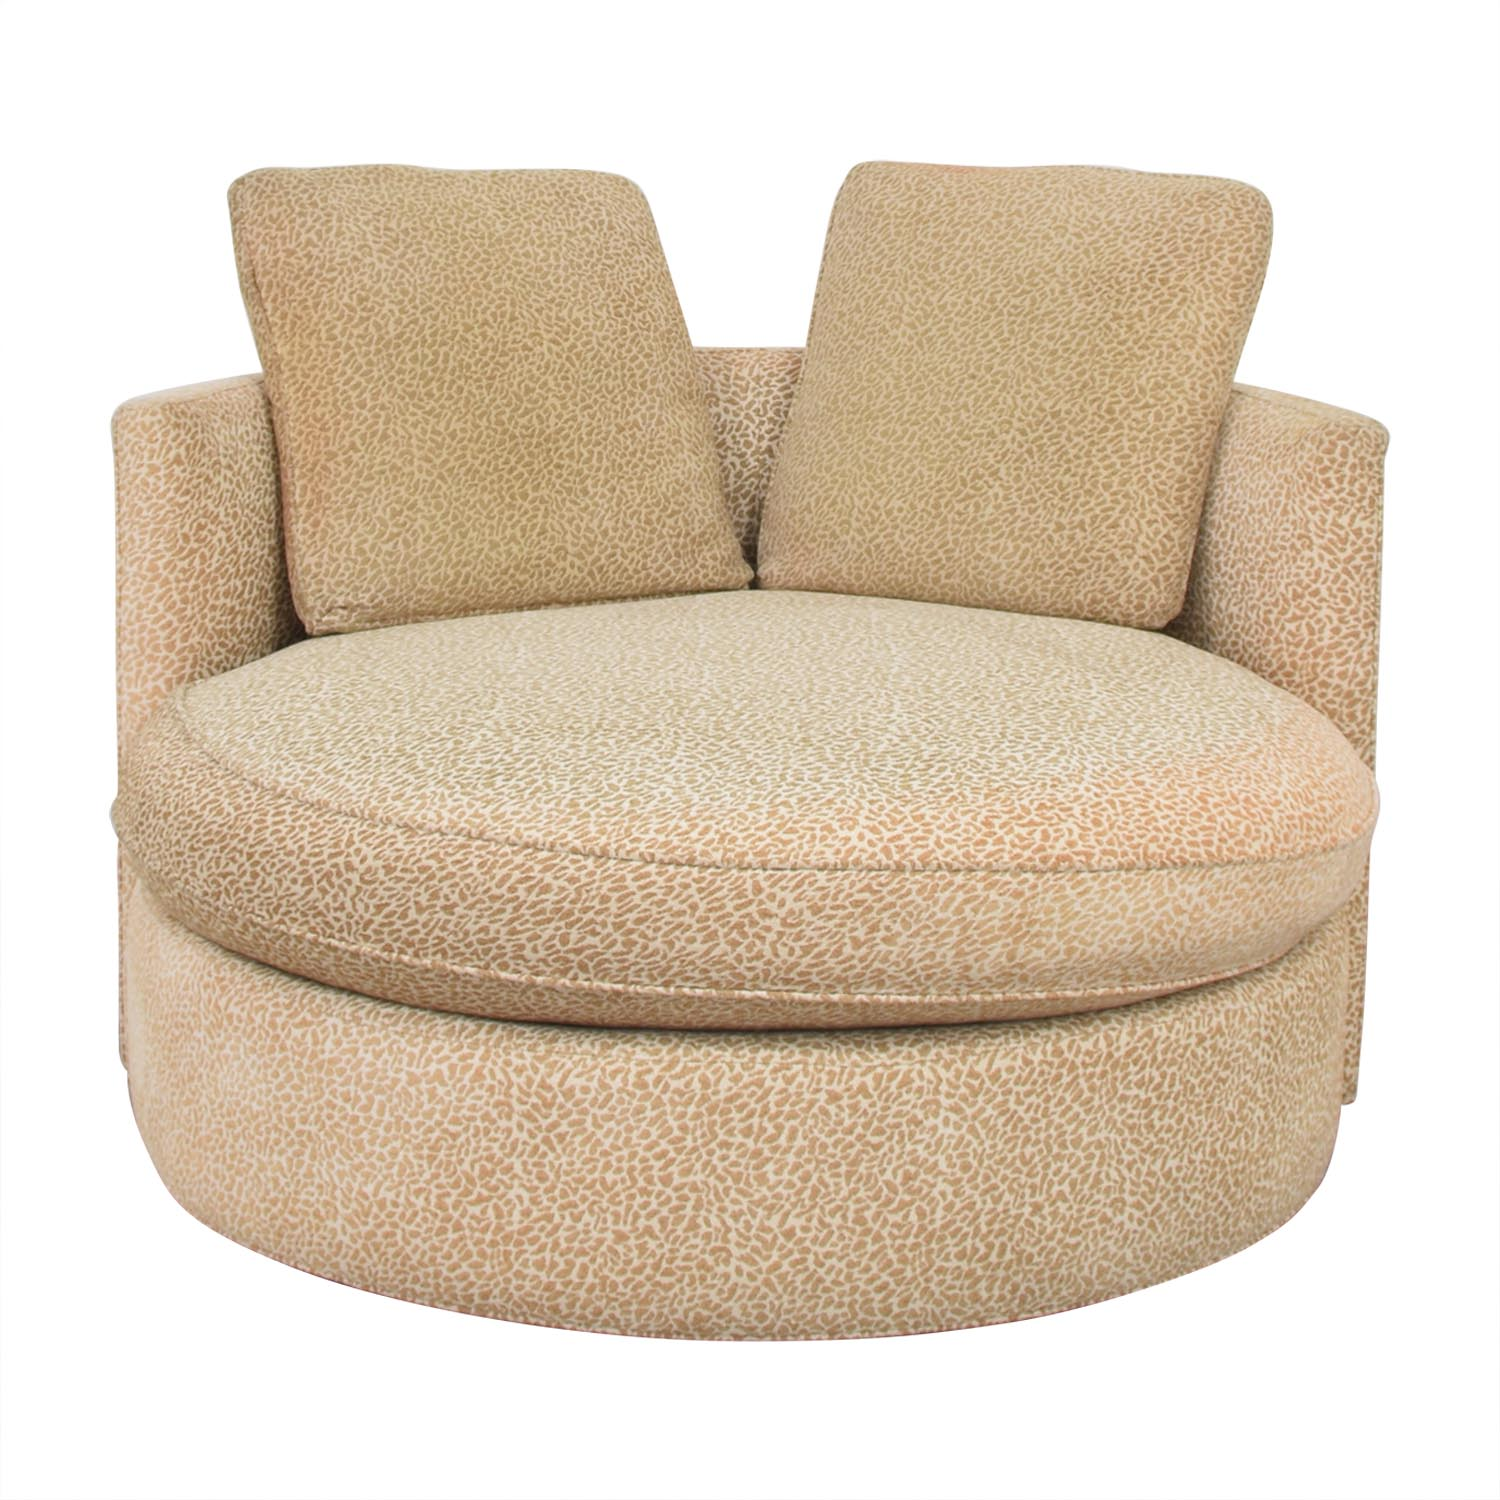 Macy's Macy's Circle Swivel Chair used